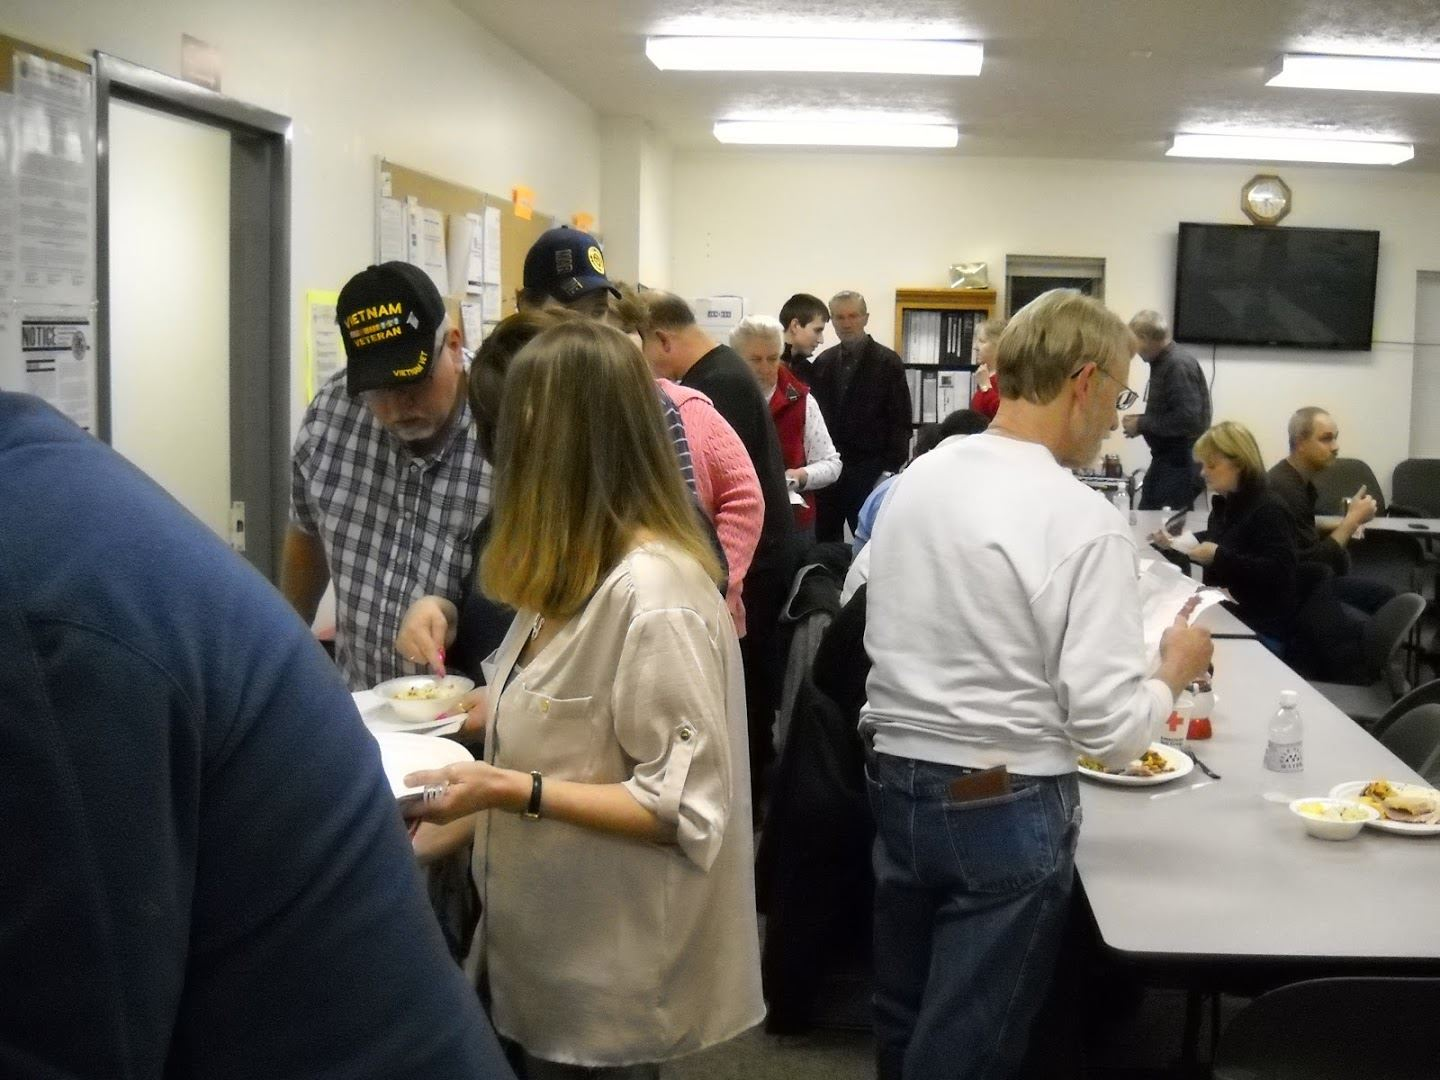 2014 Christmas Potluck, people standing in buffet line